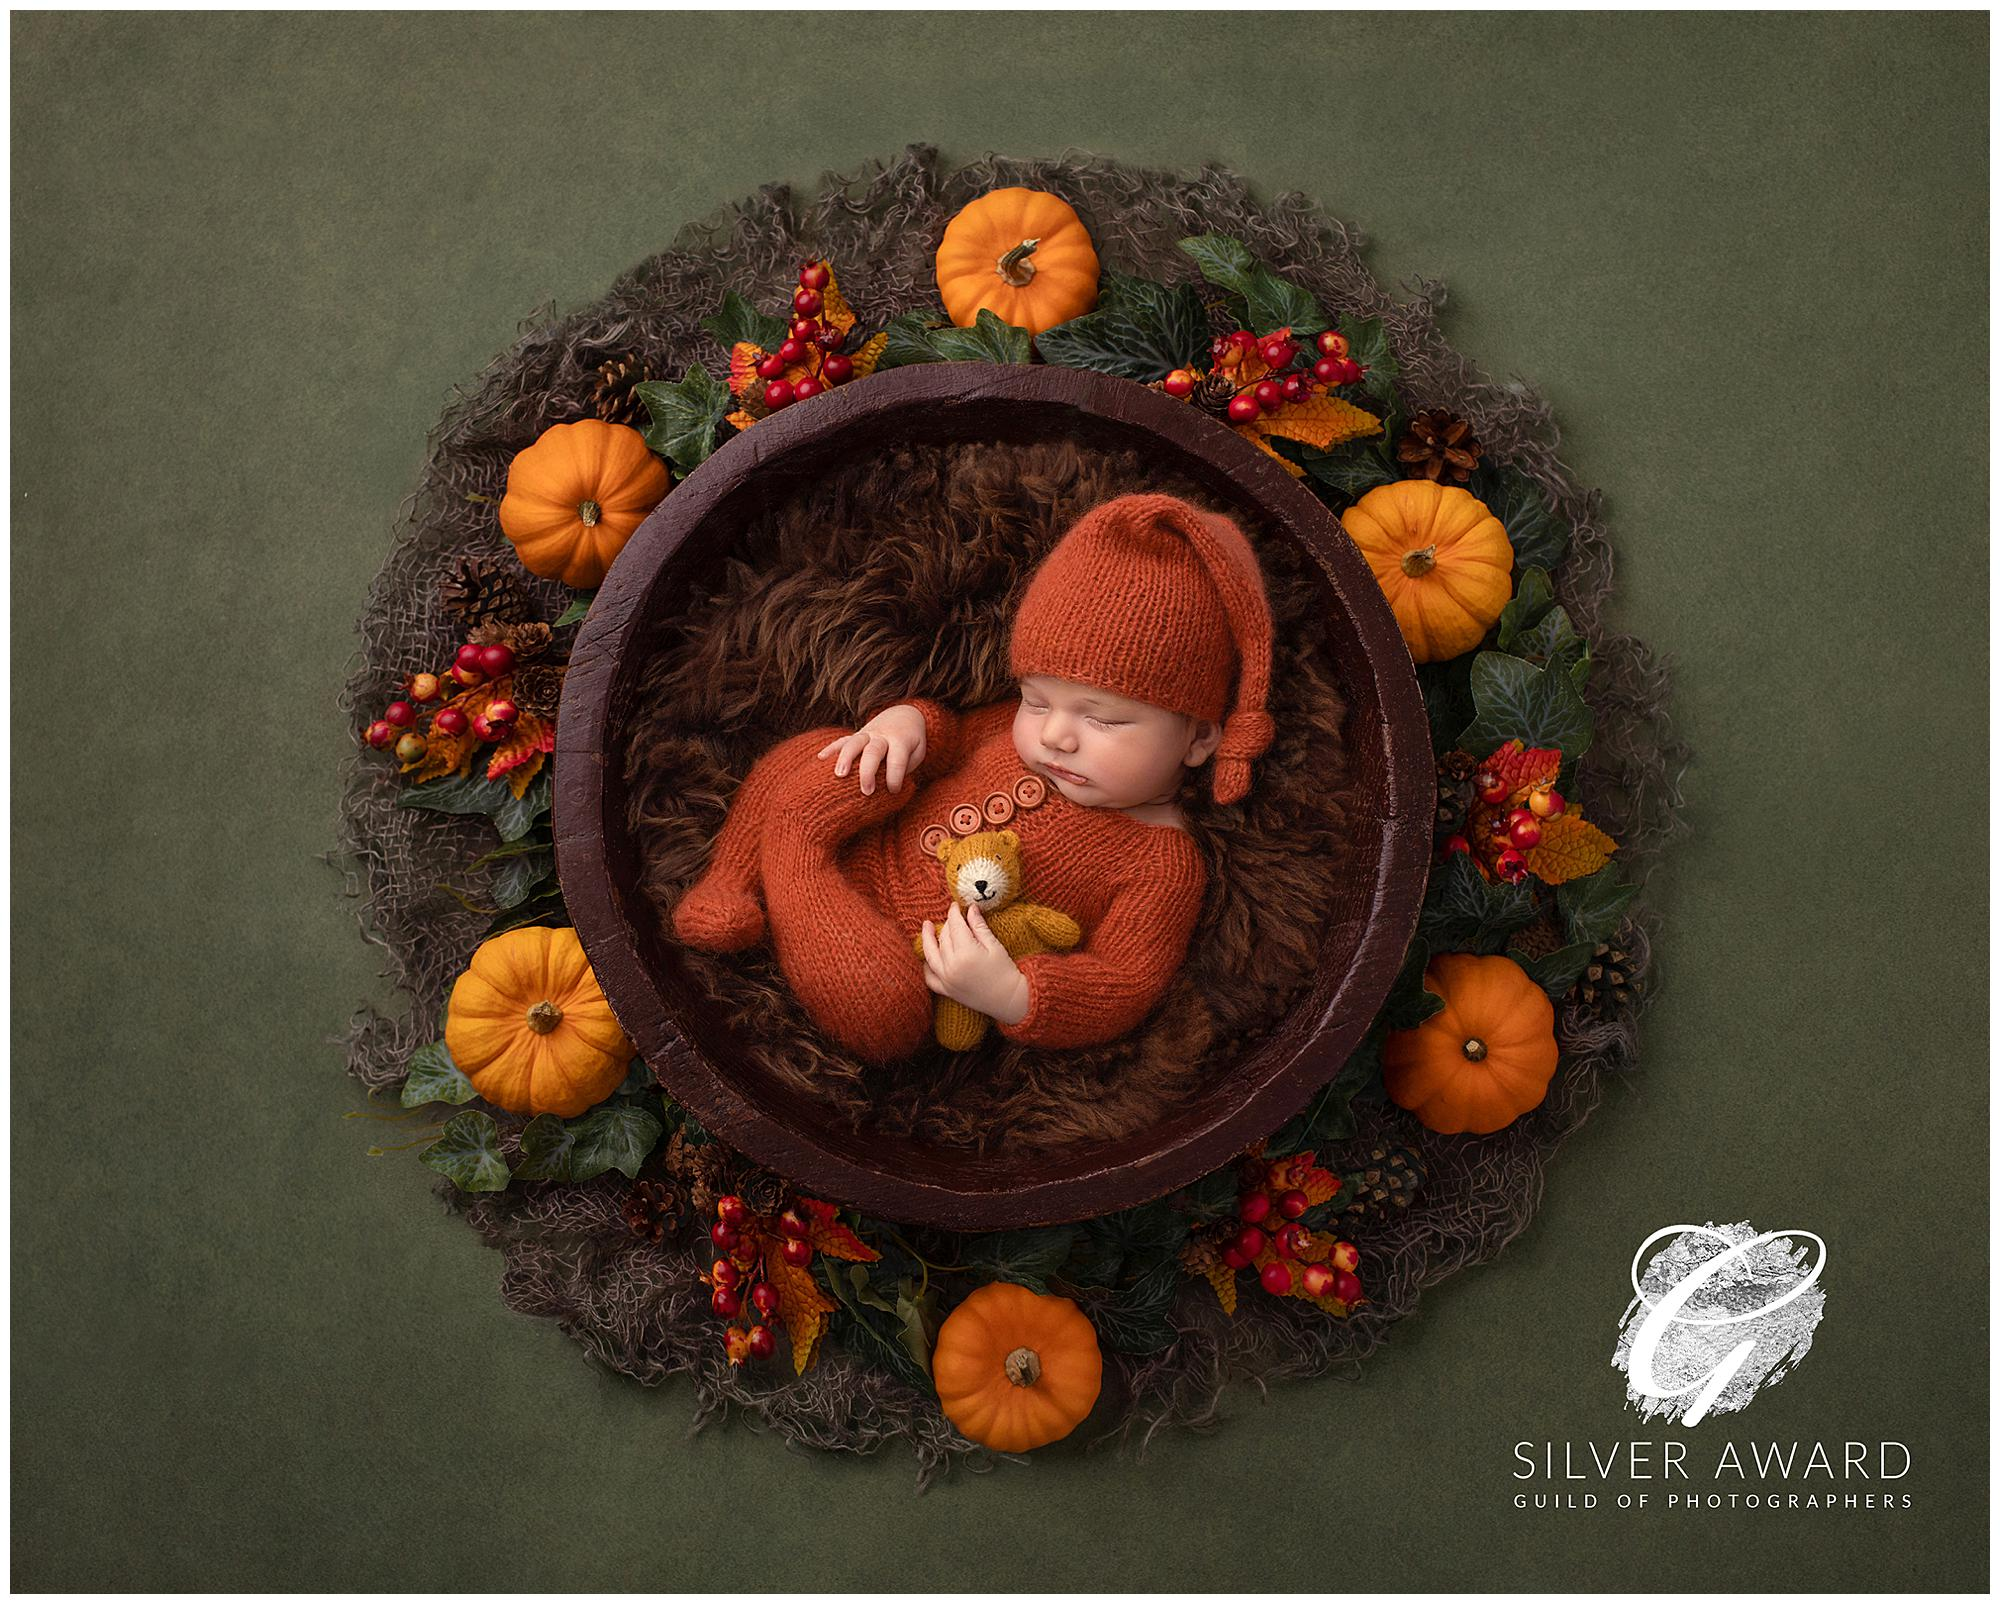 Newborn Baby lying in a wooden Bowl surrounded by pumpkins wins a Silver Award in the Portrait Masters 2020 Competition